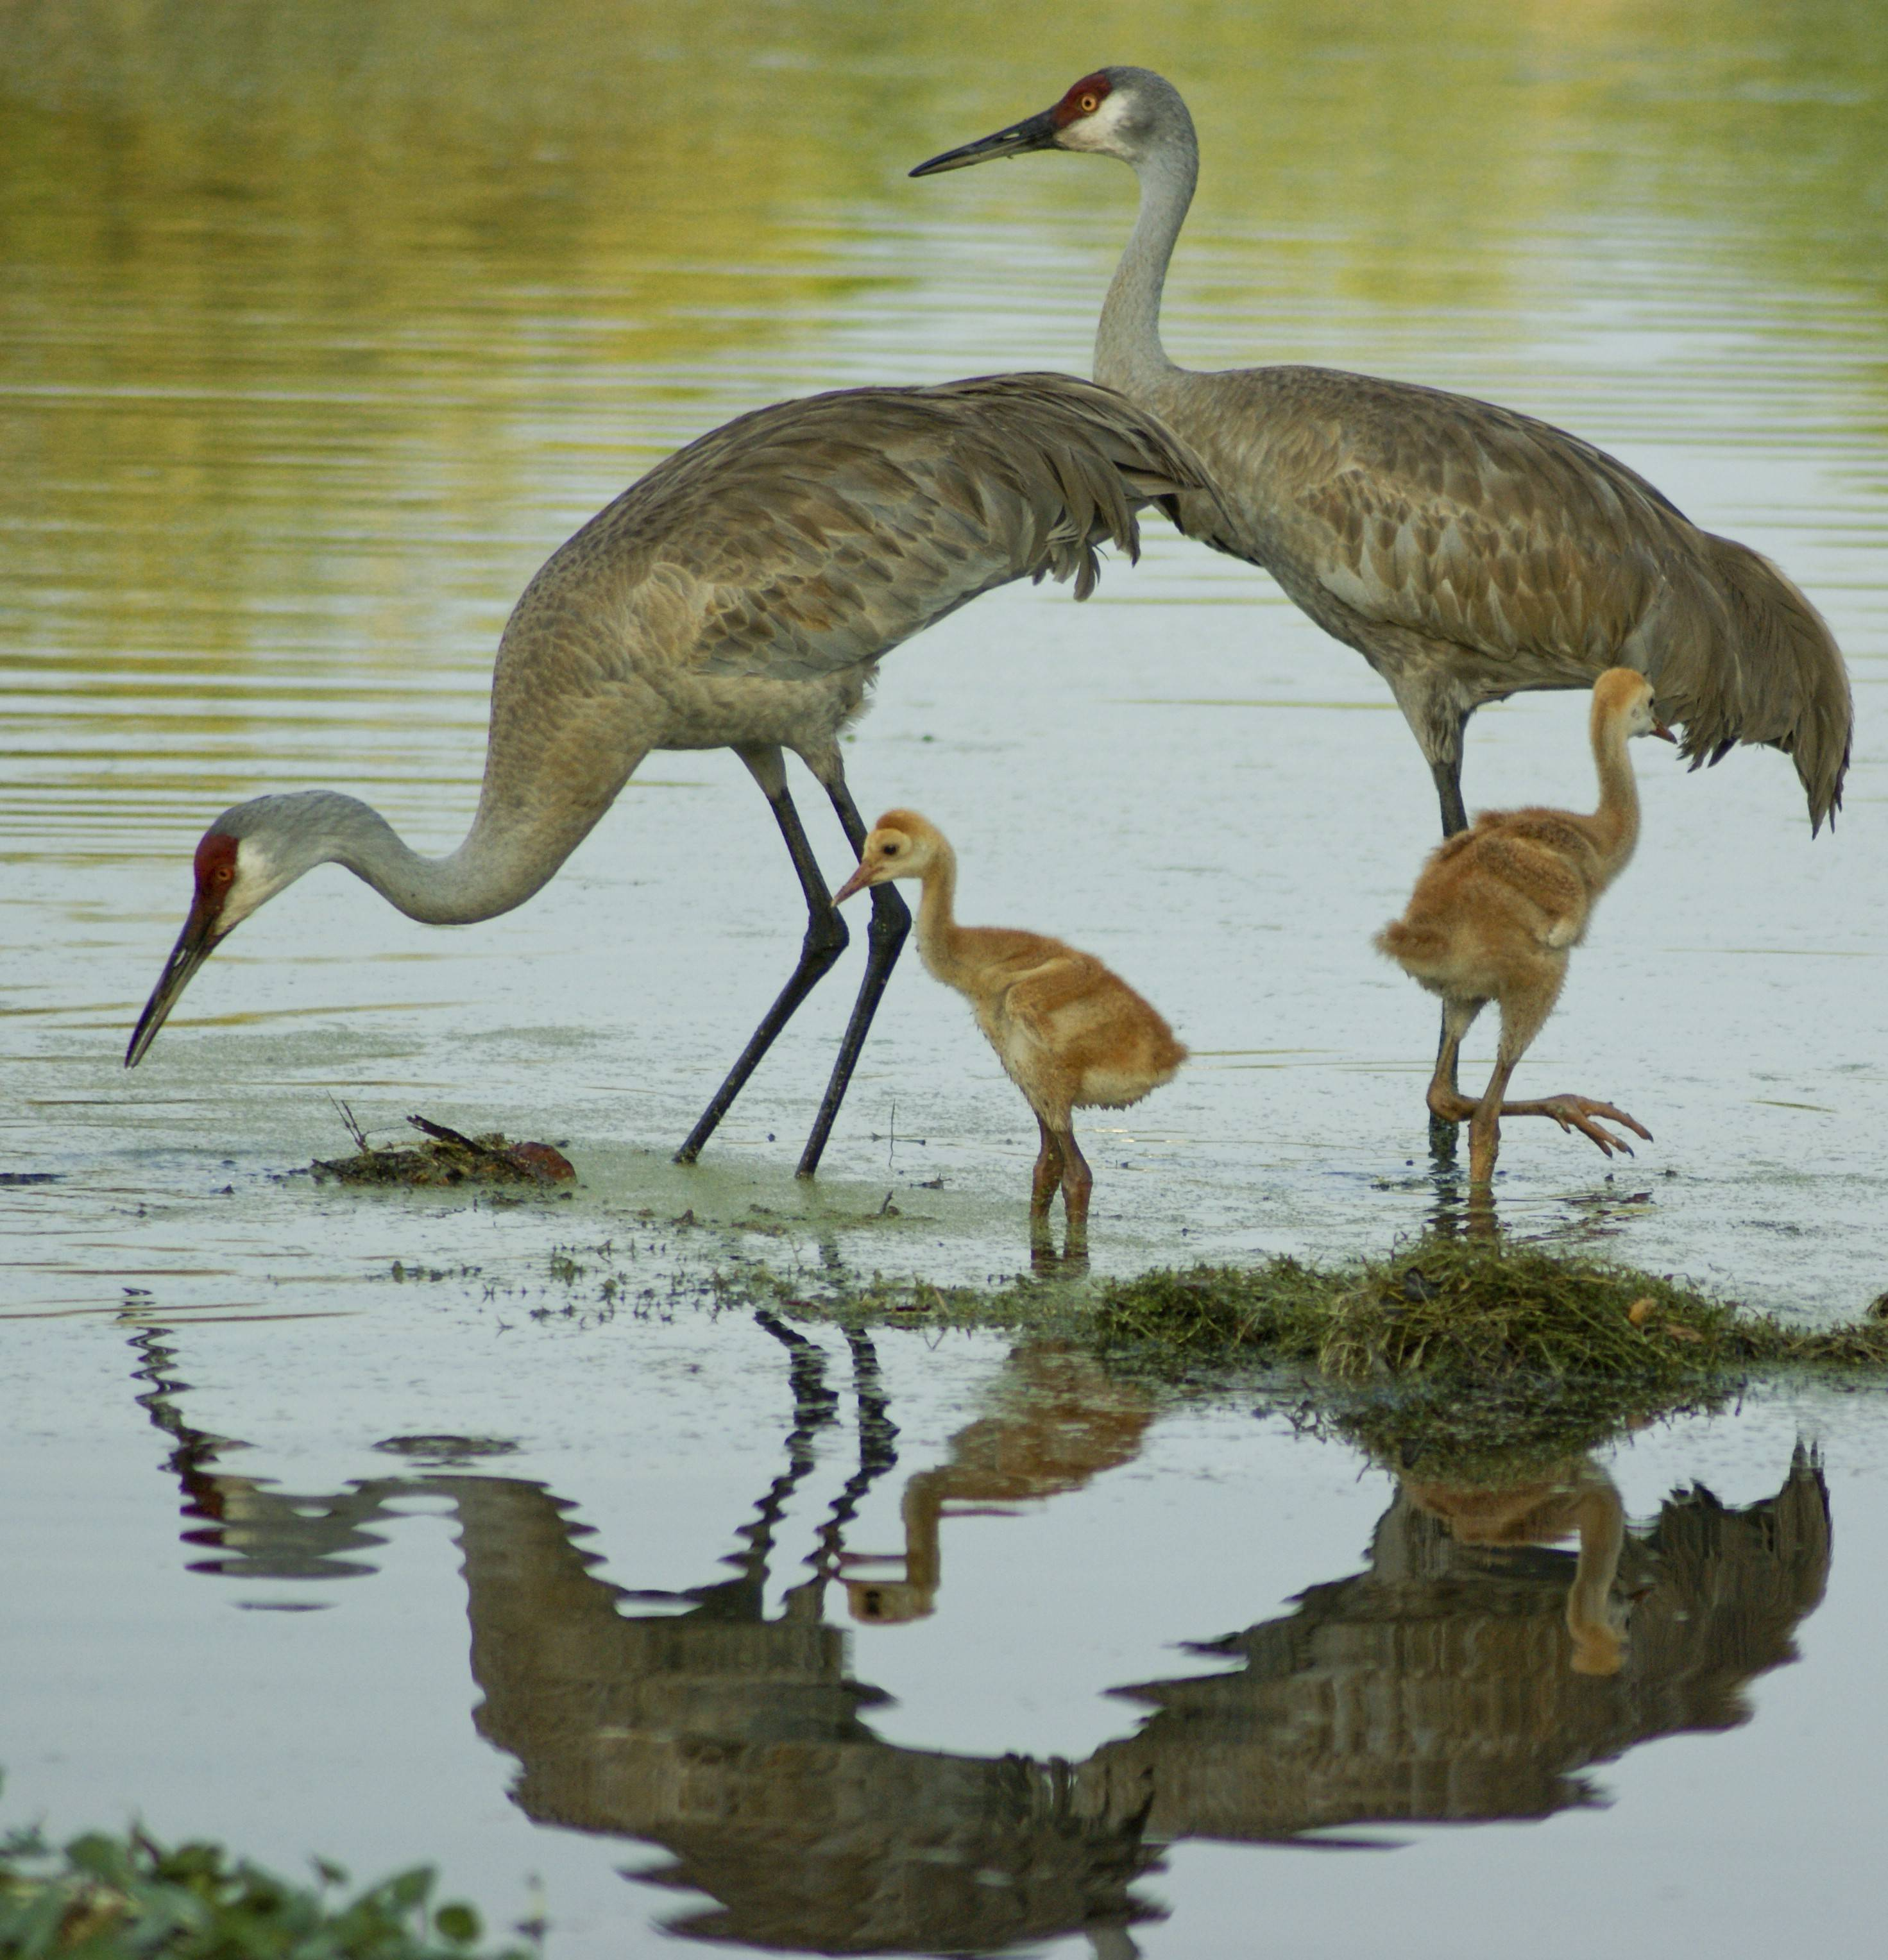 Look for migrating birds, like sandhill cranes, pictured above, during the Kane County Audubon Society's Bird Walk at the Dick Young Forest Preserve in Batavia.